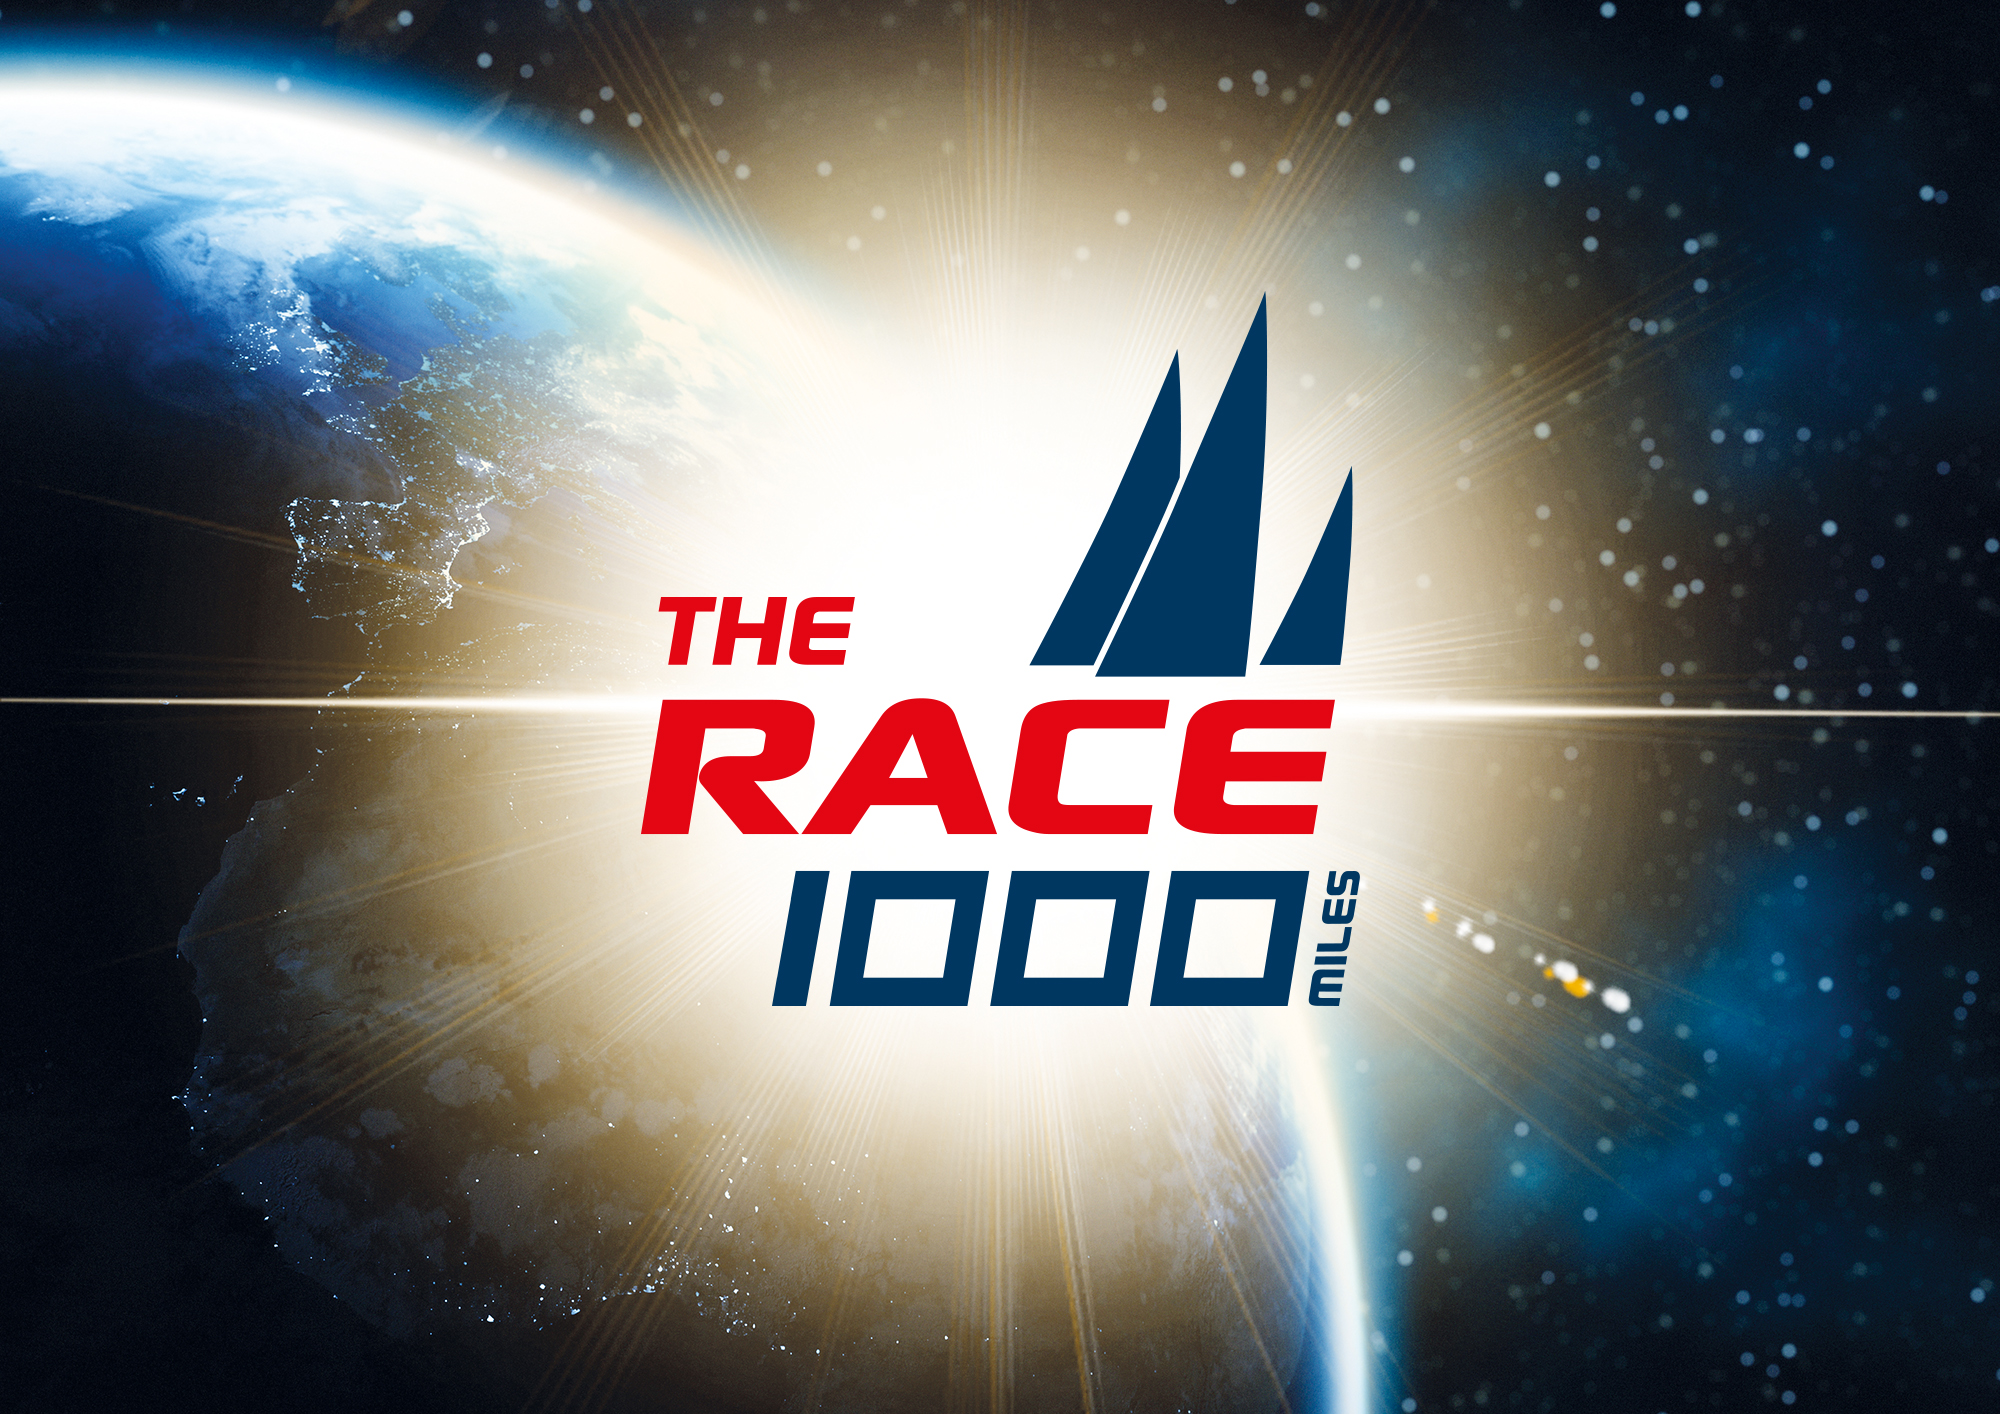 The Race - 1000 miles